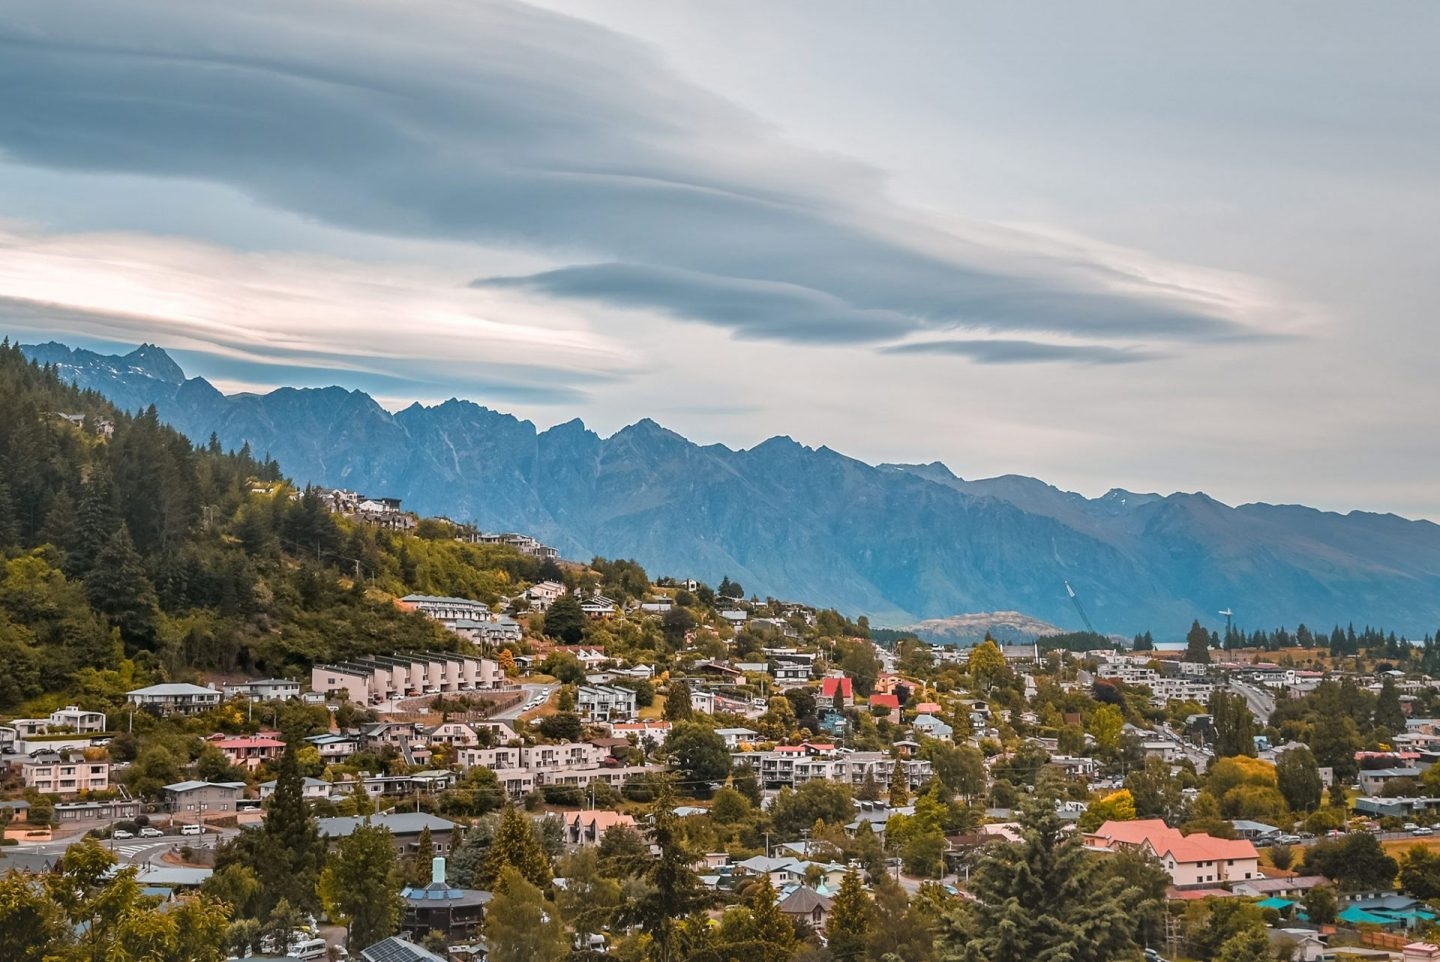 Things to do in Queenstown if you're not an adrenaline junkie